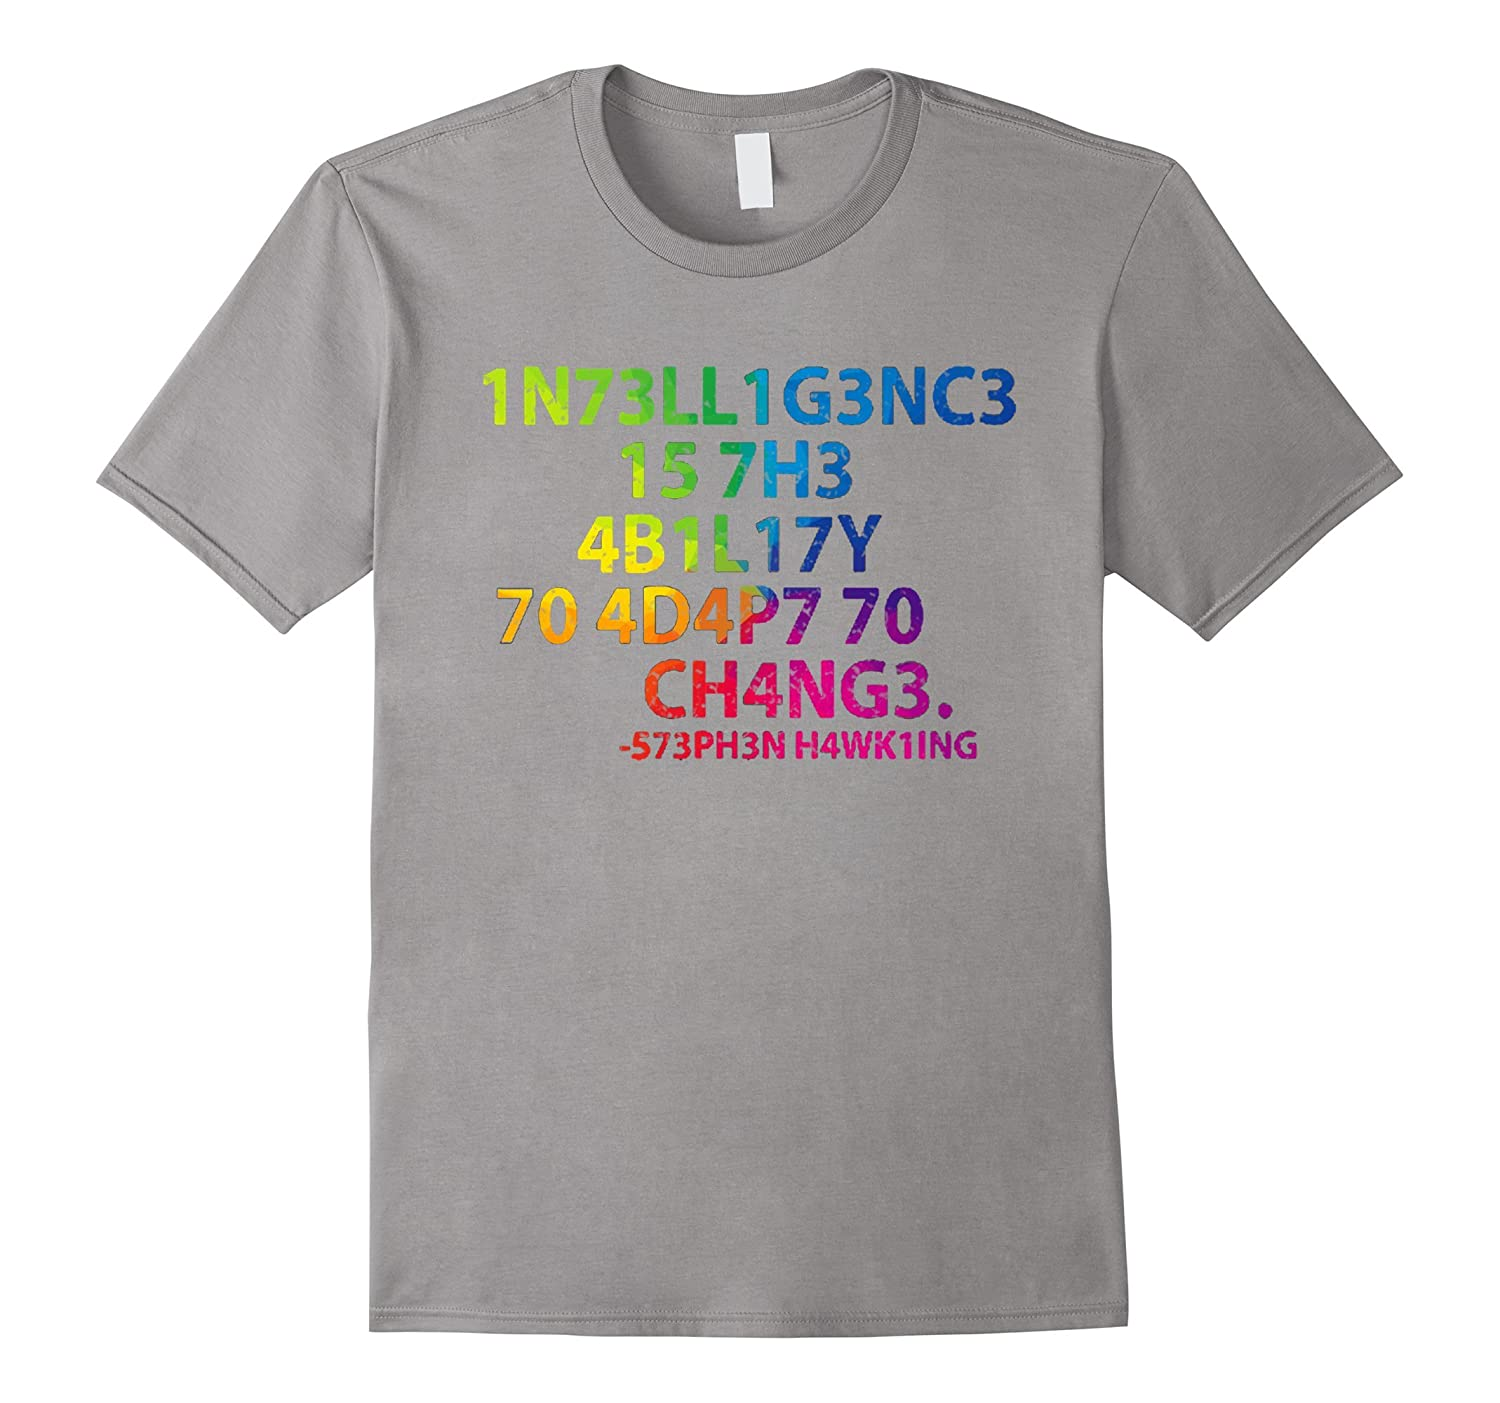 Intelligence T Shirt - Funny Hidden Message Shirt-BN